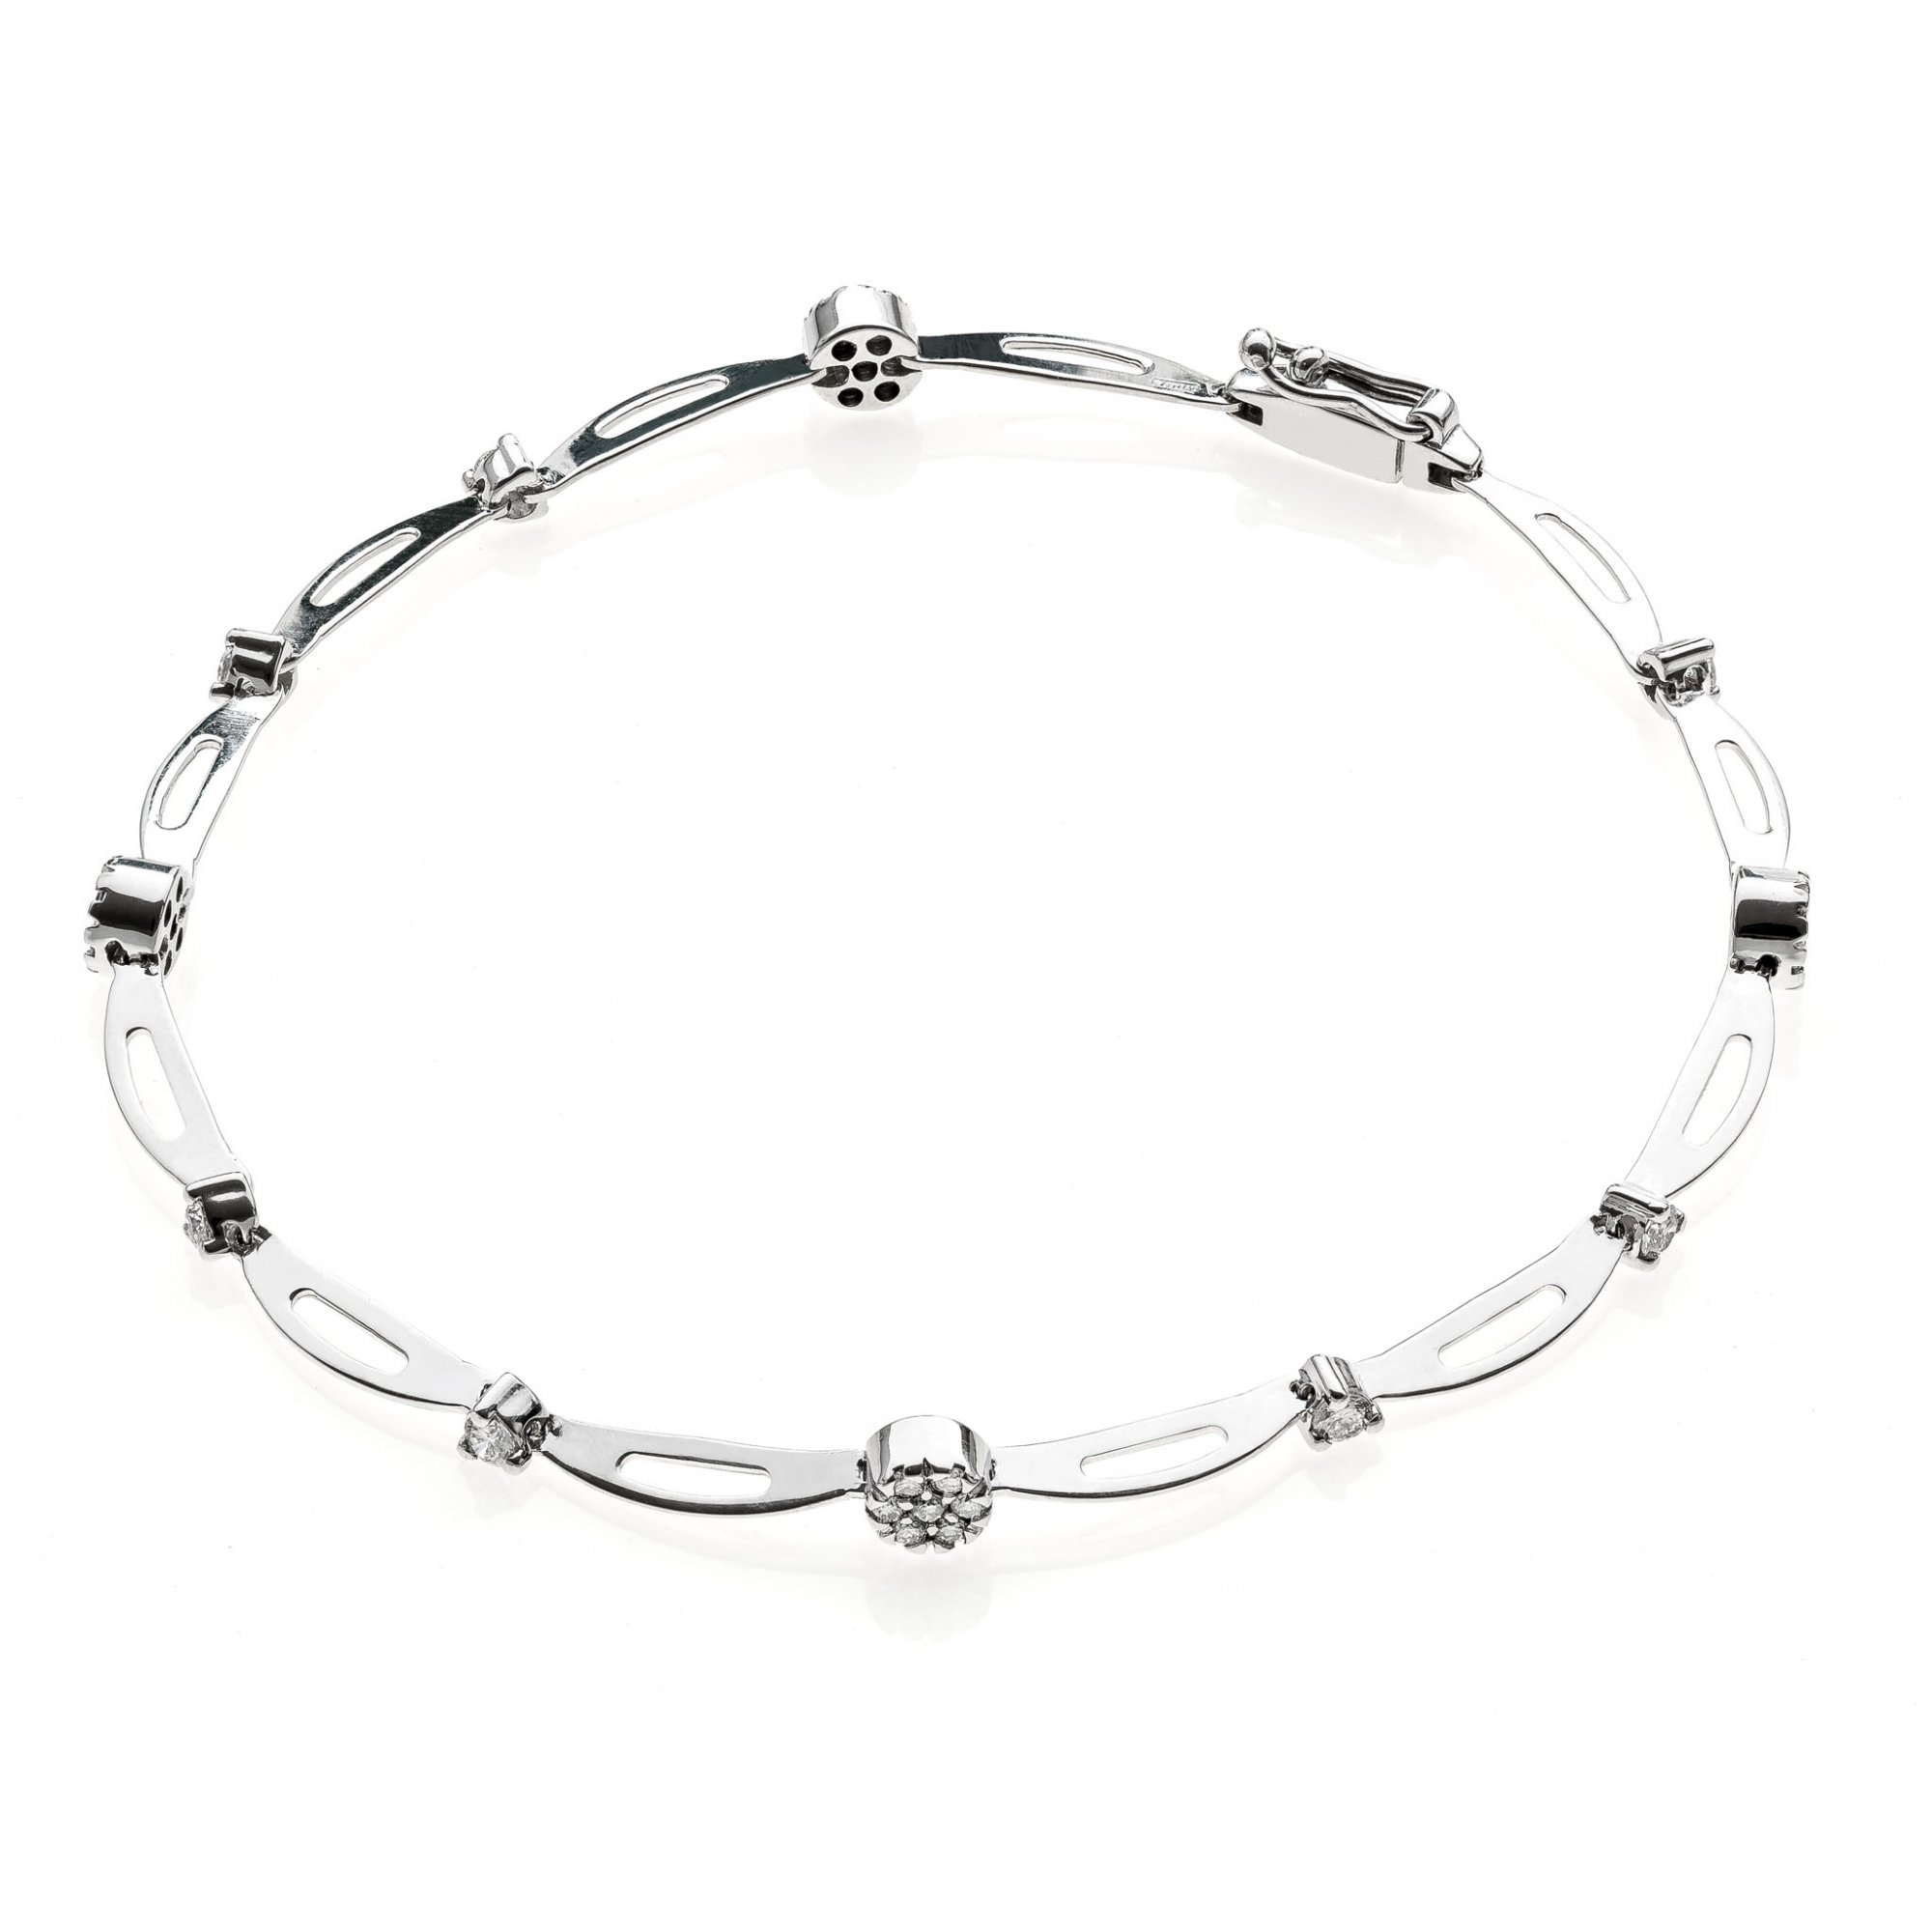 18 KT white gold bracelet with round brilliant cut diamonds ct.0.40 VS H color